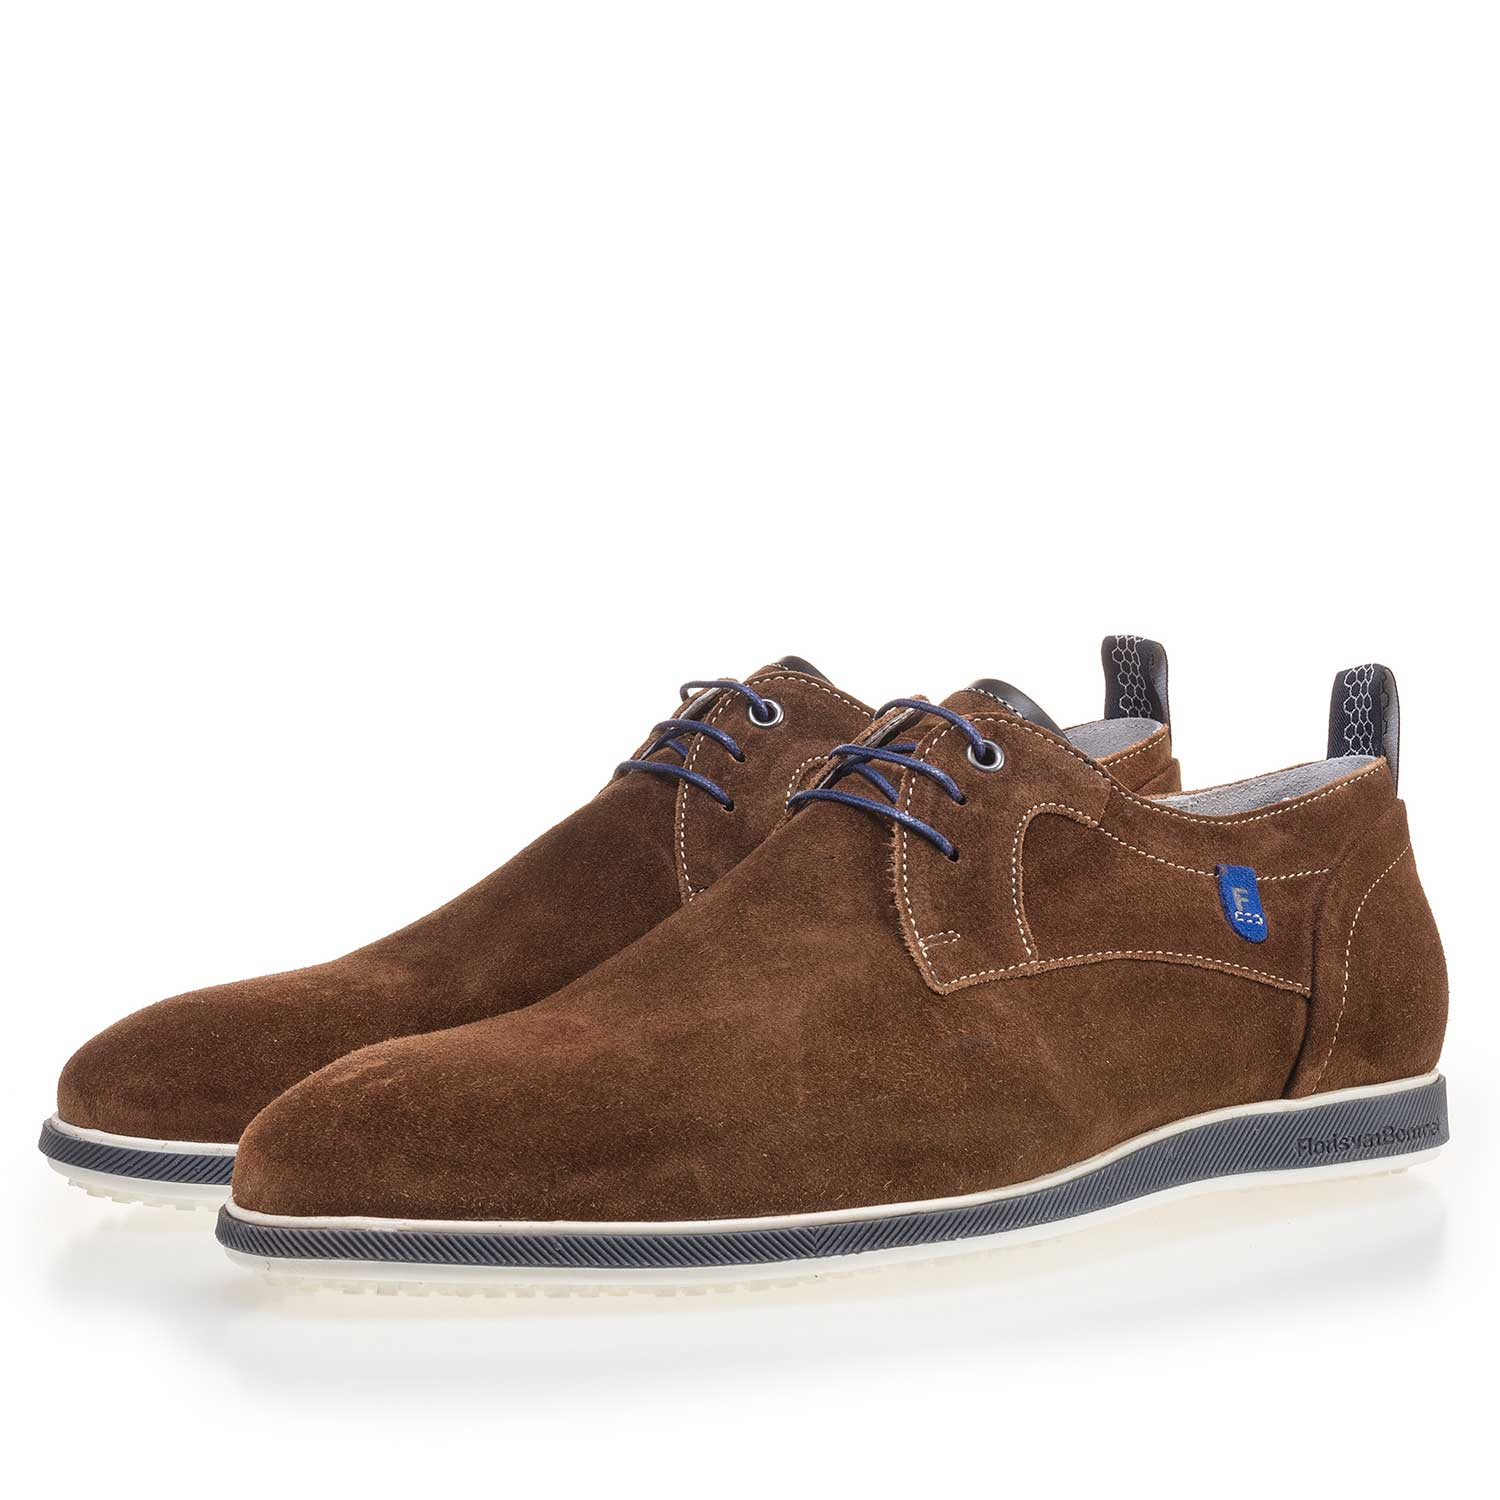 14076/02 - Brown suede leather lace shoe